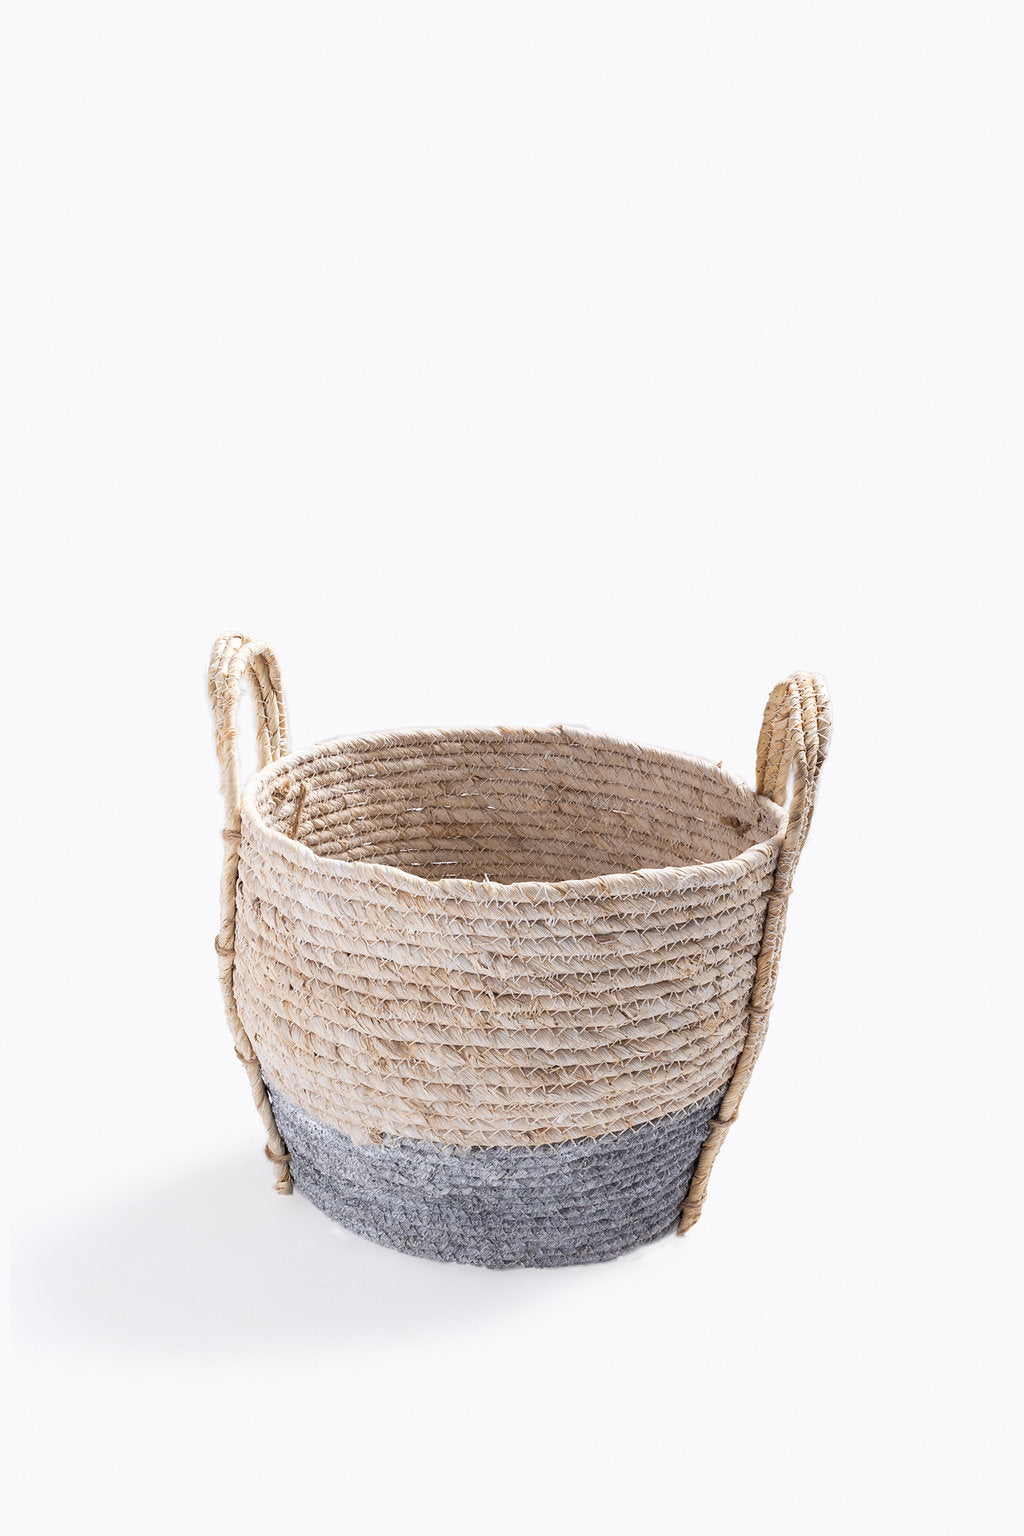 HOME: Shore Baskets, 3 Sizes